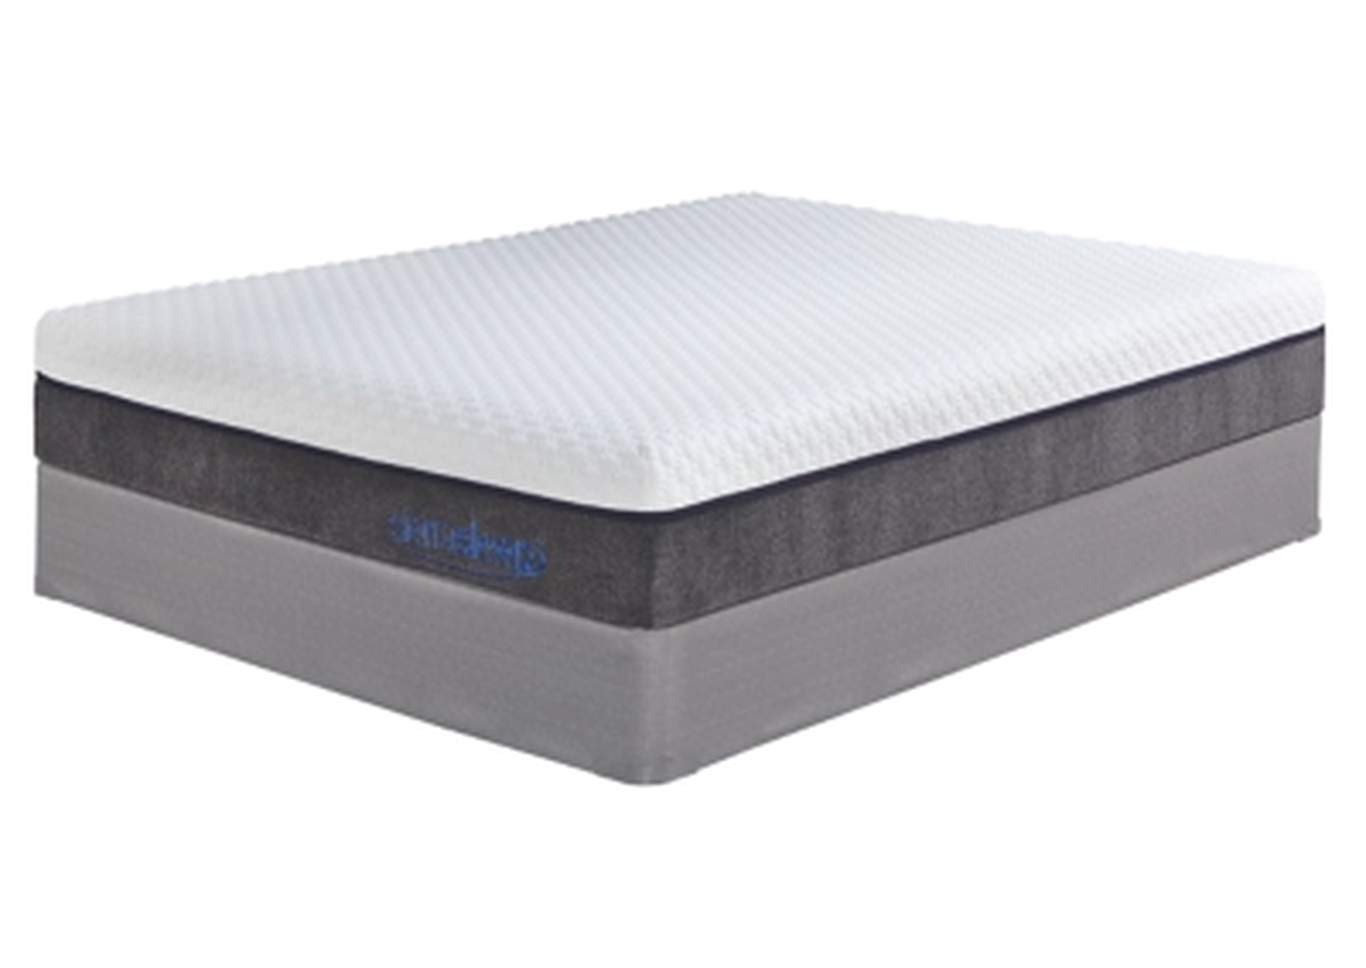 Mygel Hybrid 1100 Full Mattress w/Foundation,Sierra Sleep